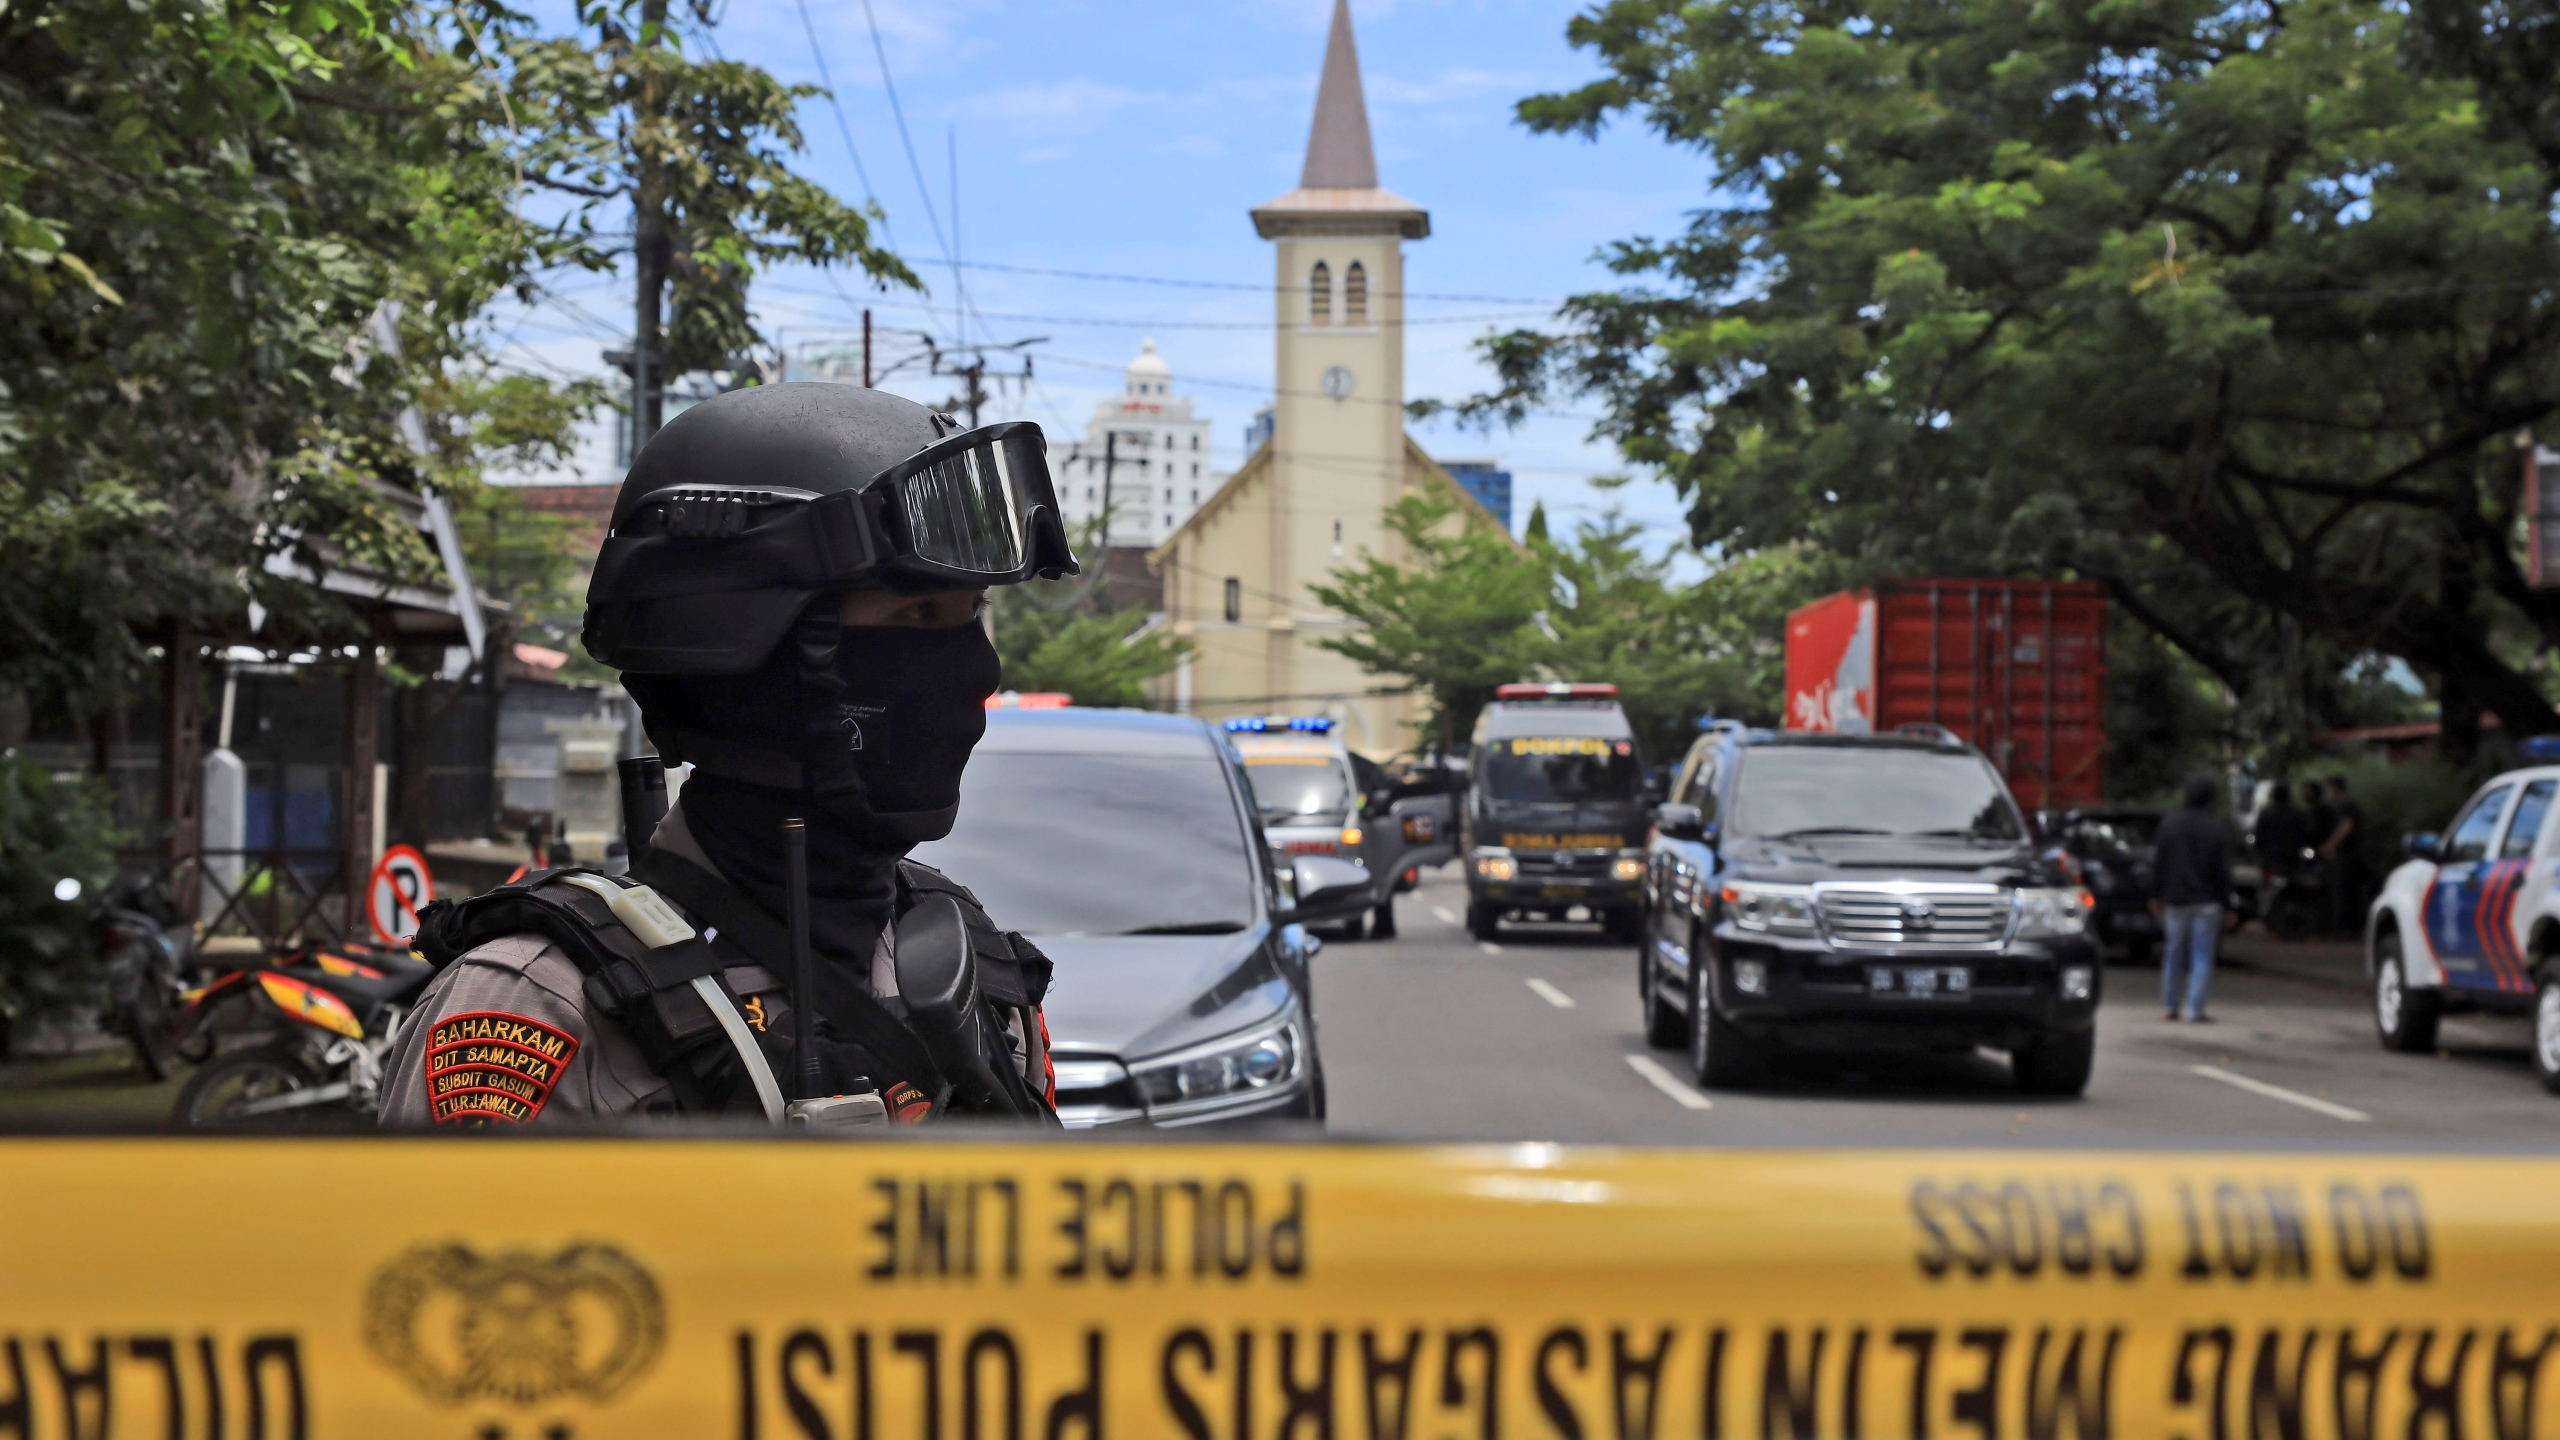 A police officer stands guard near a church where an explosion went off in Makassar, South Sulawesi, Indonesia, Sunday, March 28, 2021. (AP Photo/Yusuf Wahil)